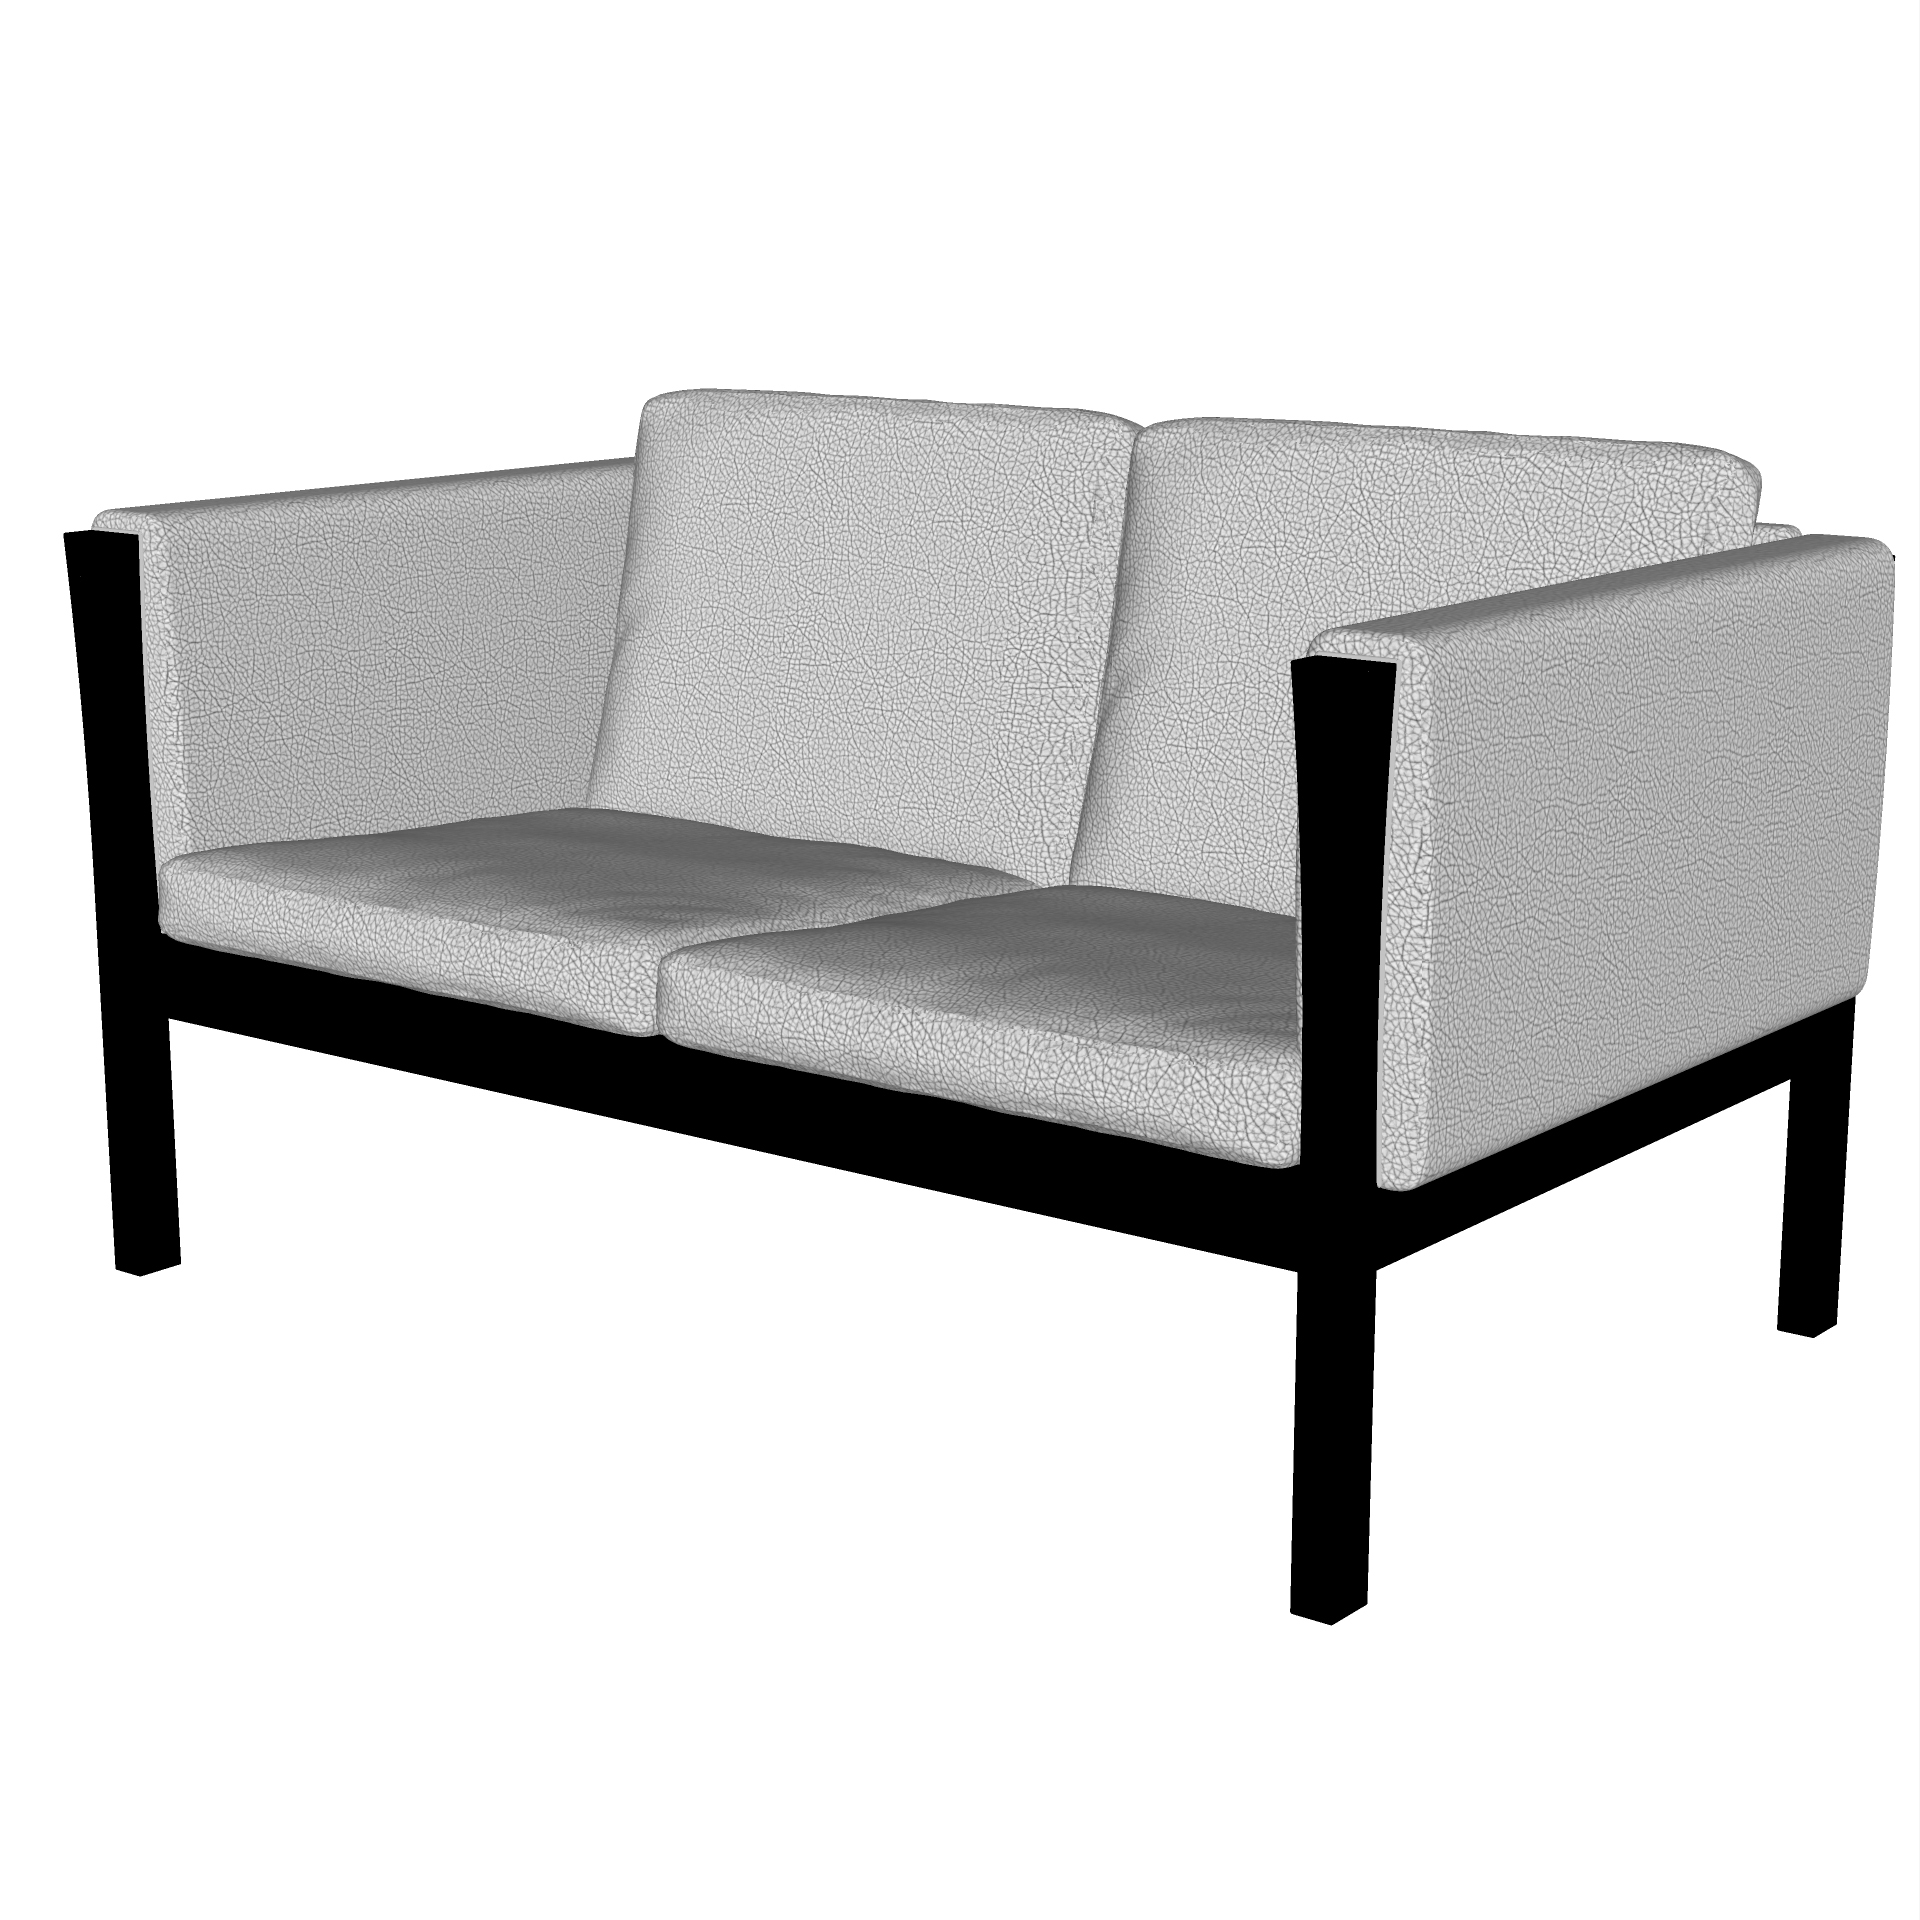 Sofa AI 01 Screenshot.jpg